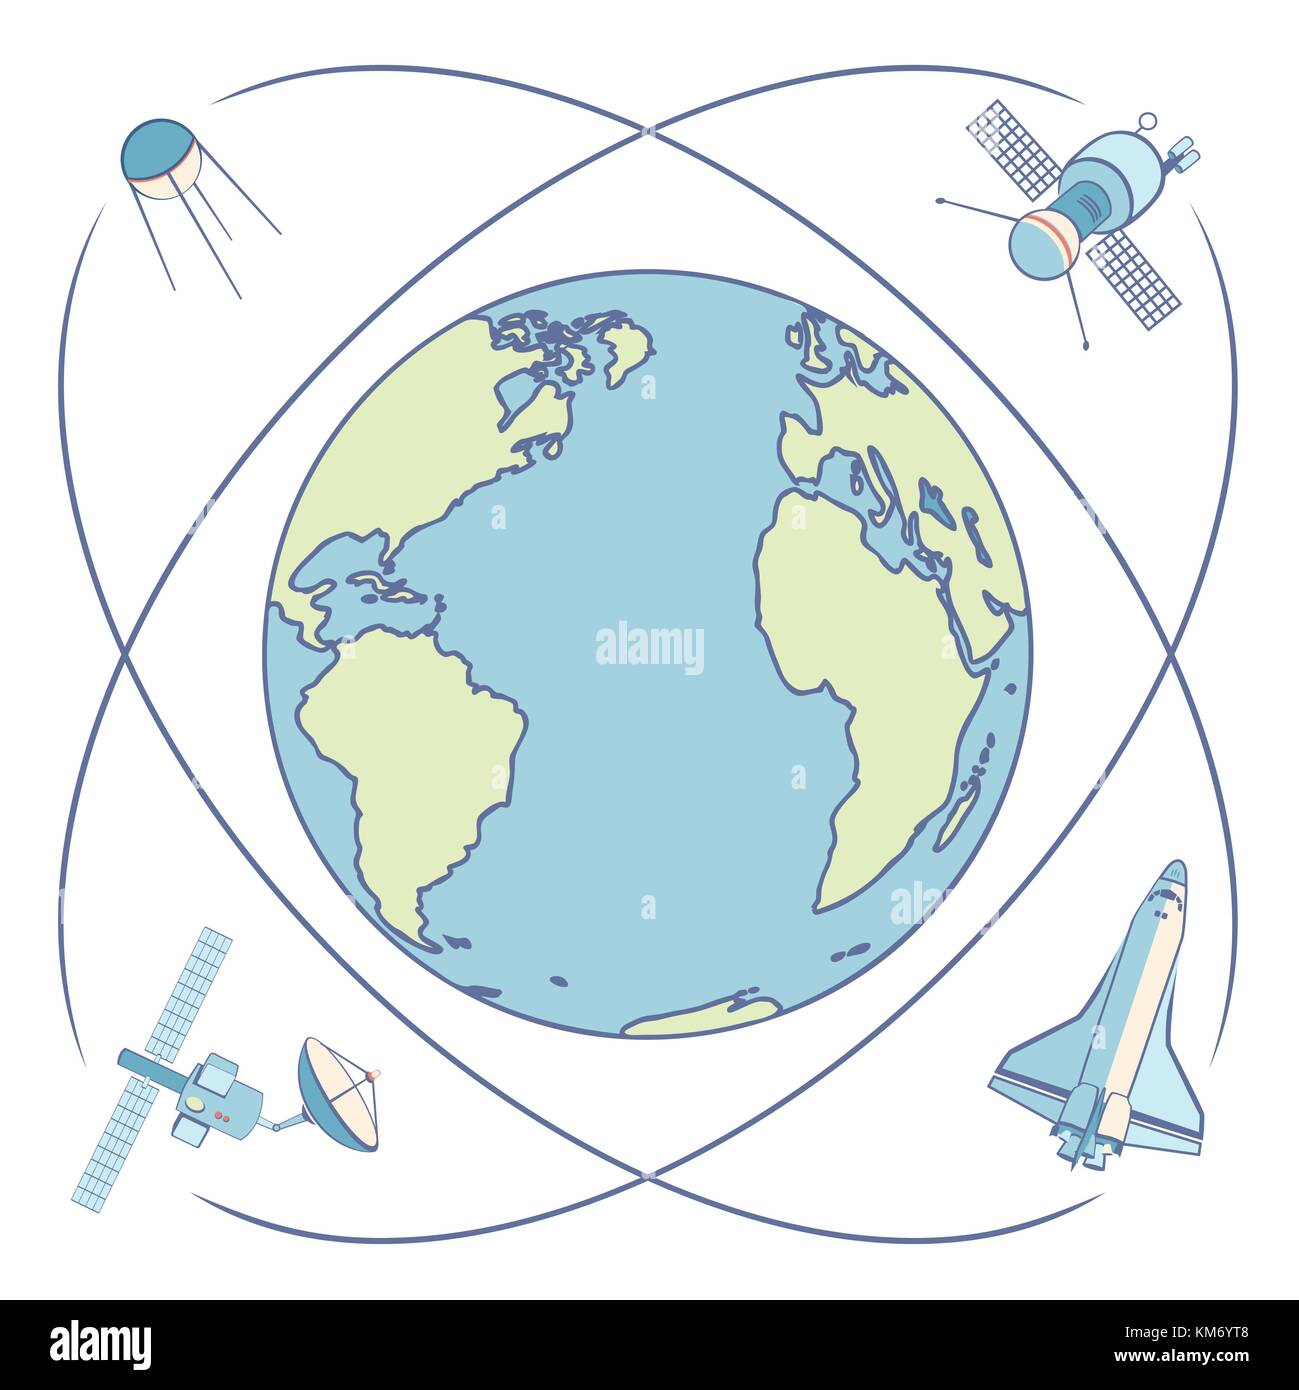 Earth in space. Satellites and spacecrafts orbiting Earth. - Stock Image